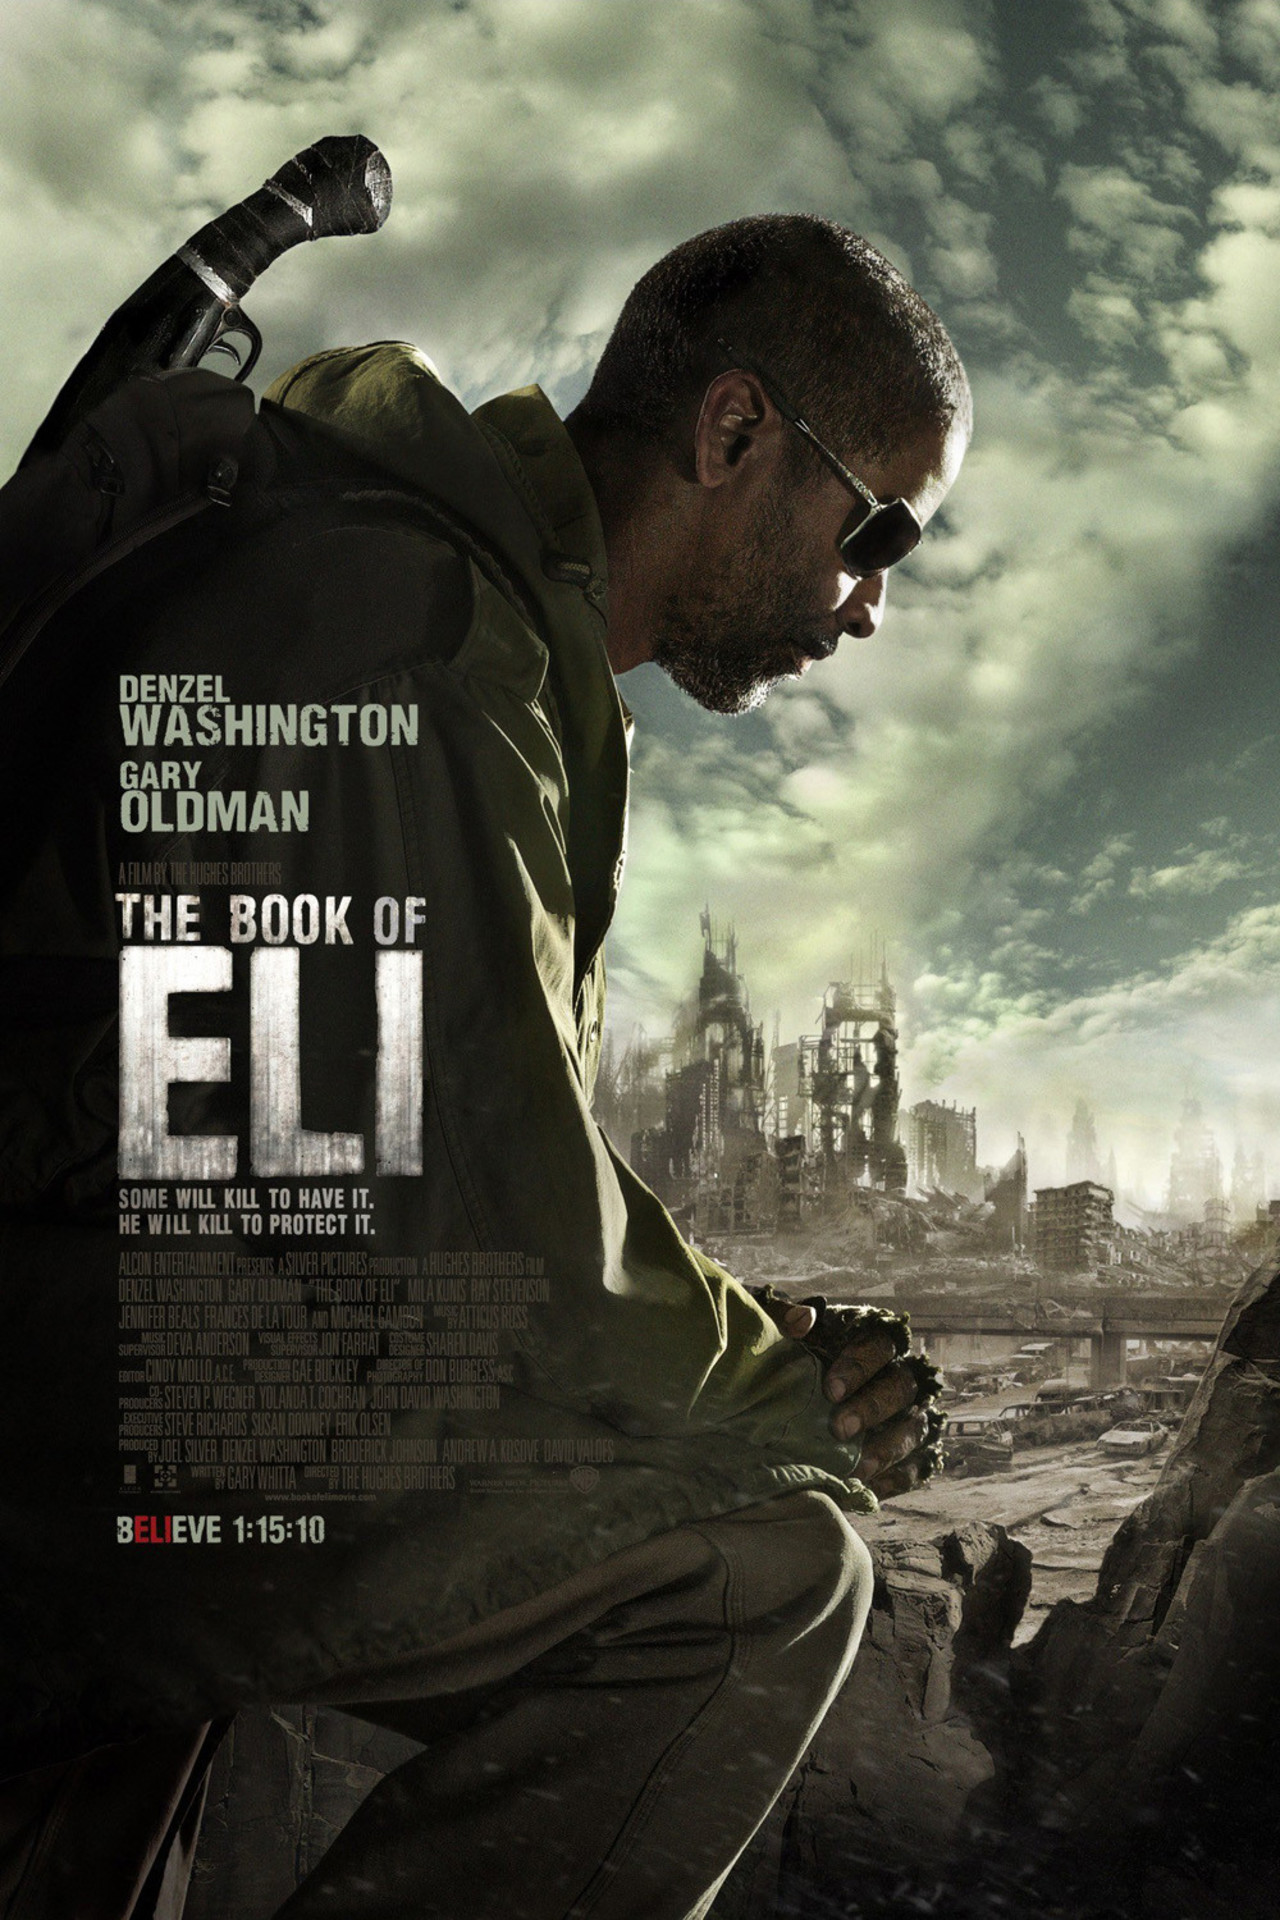 The Book of Eli (2010) - Directed by: The Hughes BrothersStarring: Denzel Washington, Gary Oldman, Mila KunisRated: RRunning Time: 1h 58mTMM Score: 3 StarsSTRENGTHS: Themes, StoryWEAKNESSES: Writing, Directorial Choices